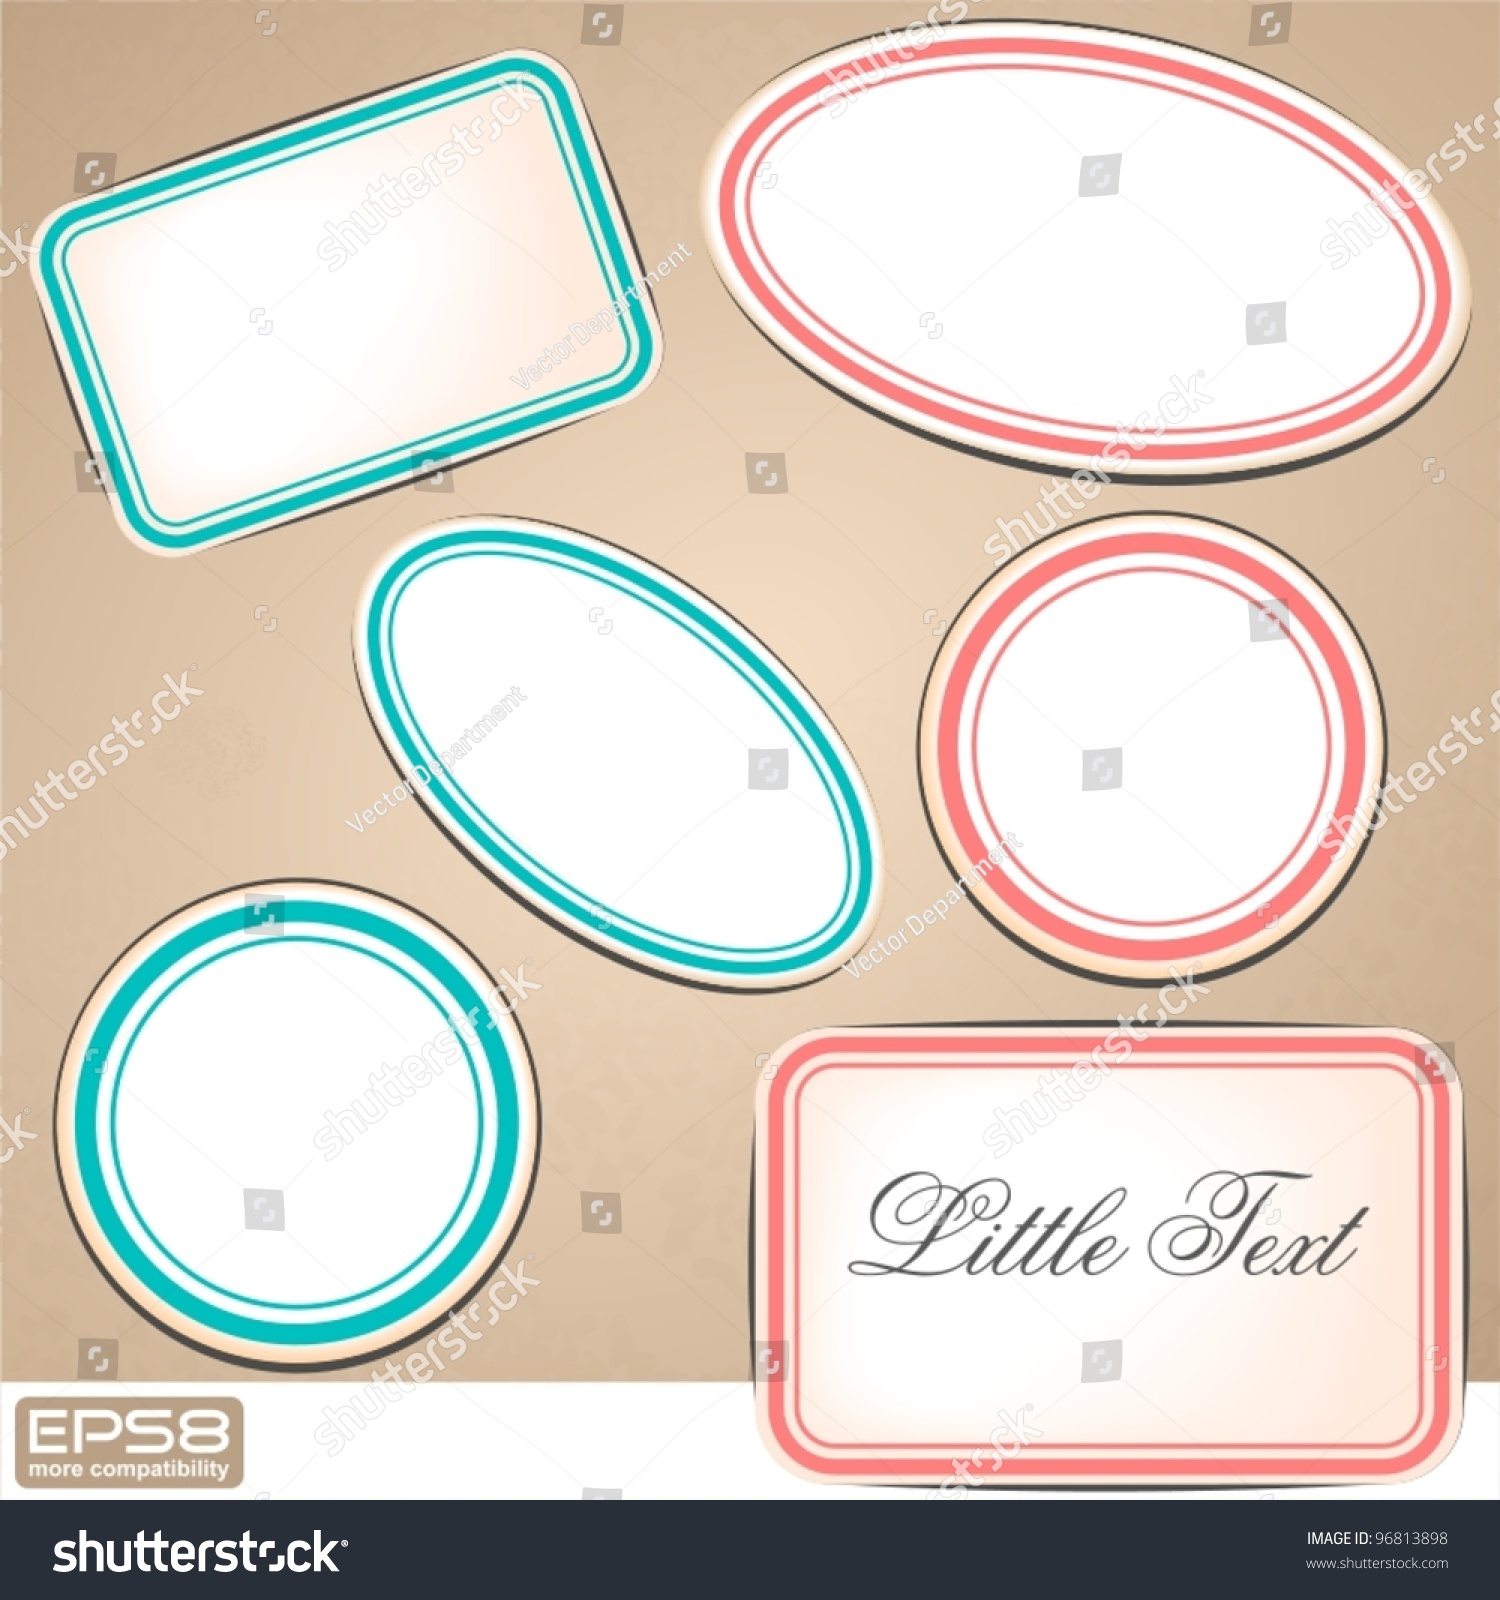 Blank Labels Stock Vector (Royalty Free) 96813898